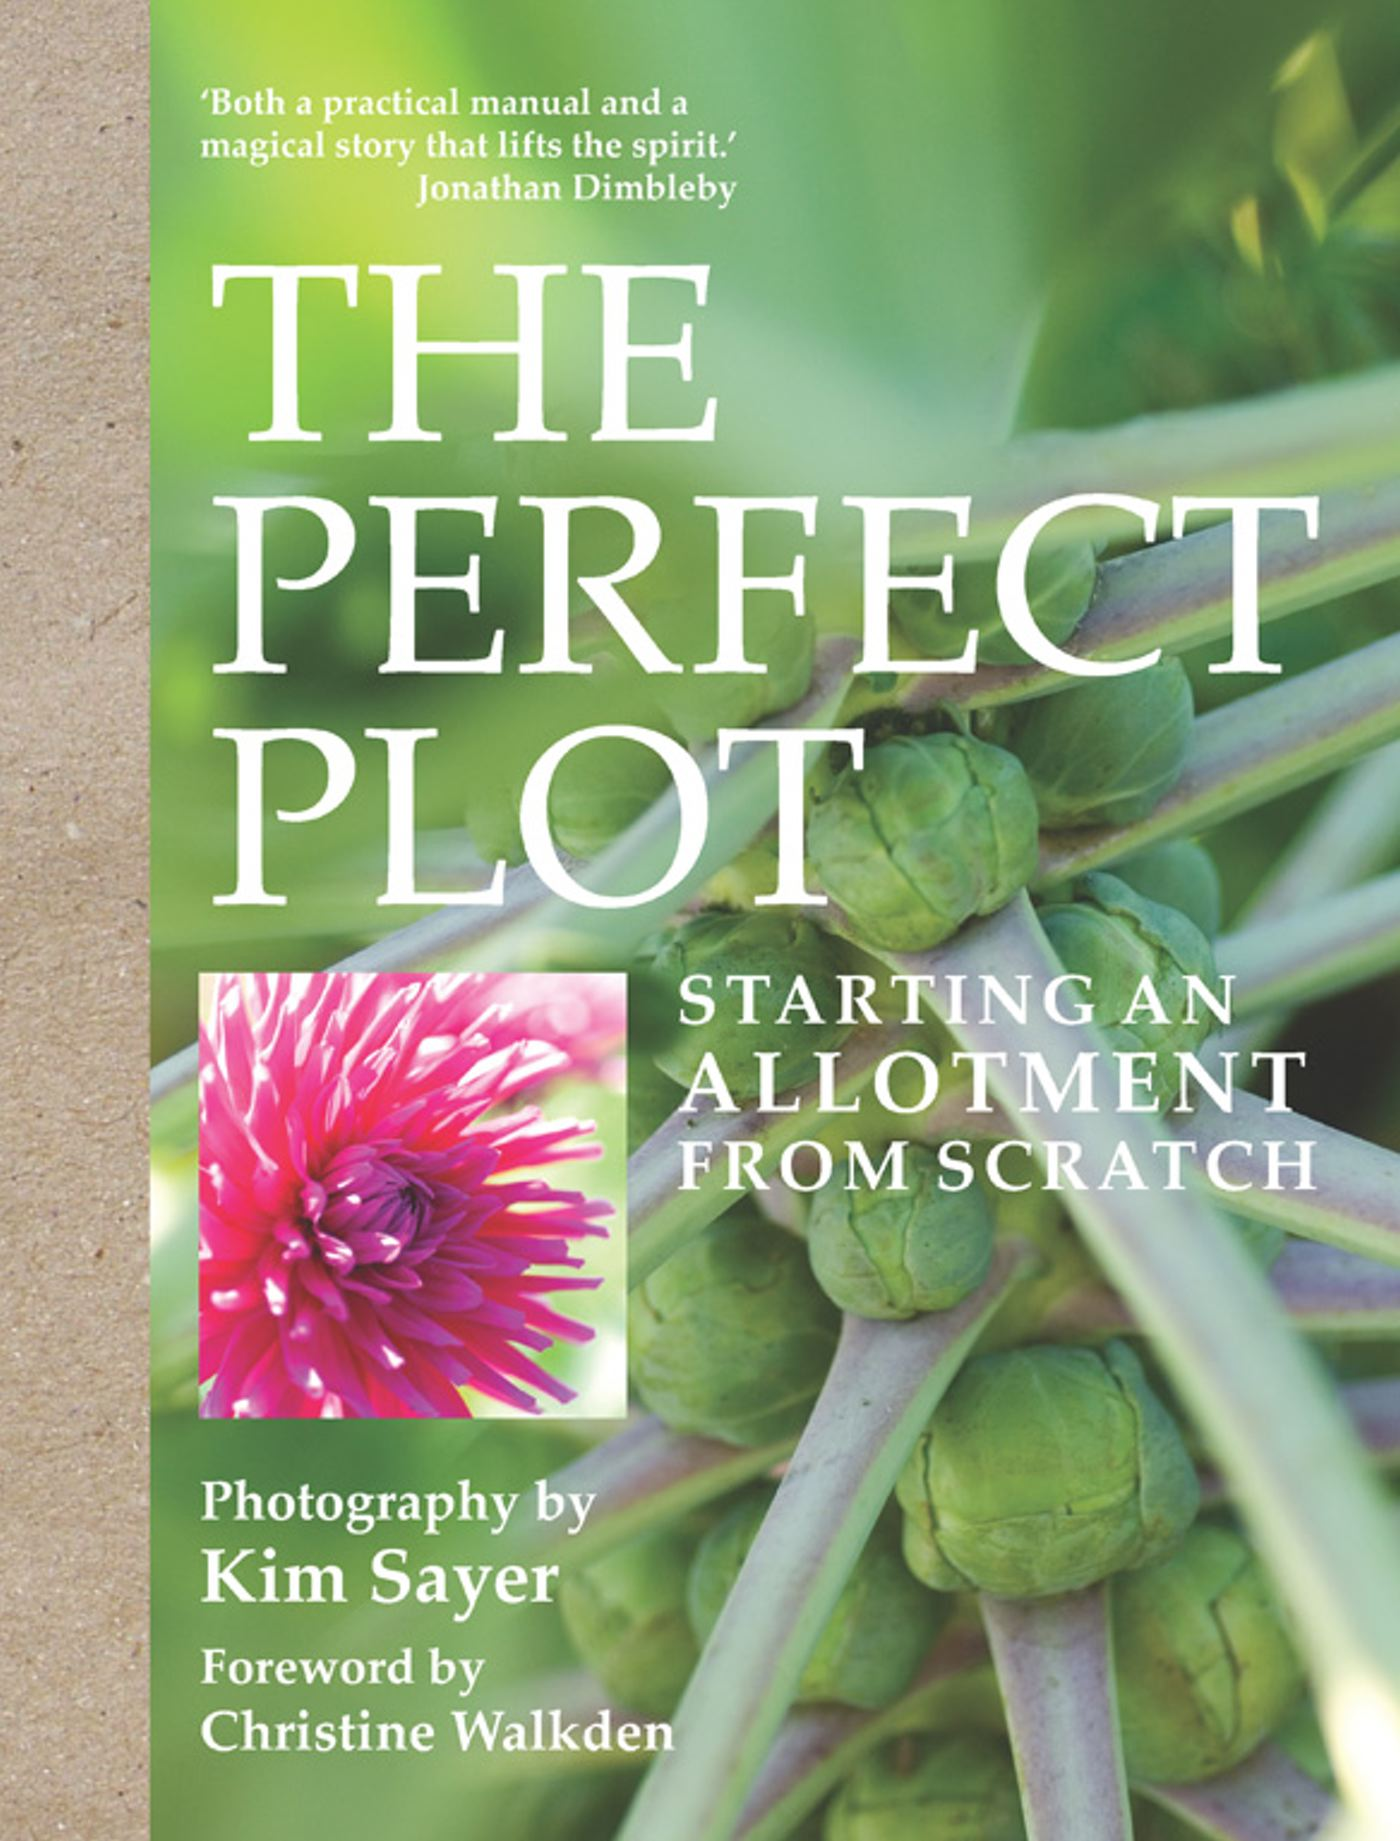 The perfect plot 9781849838337 hr